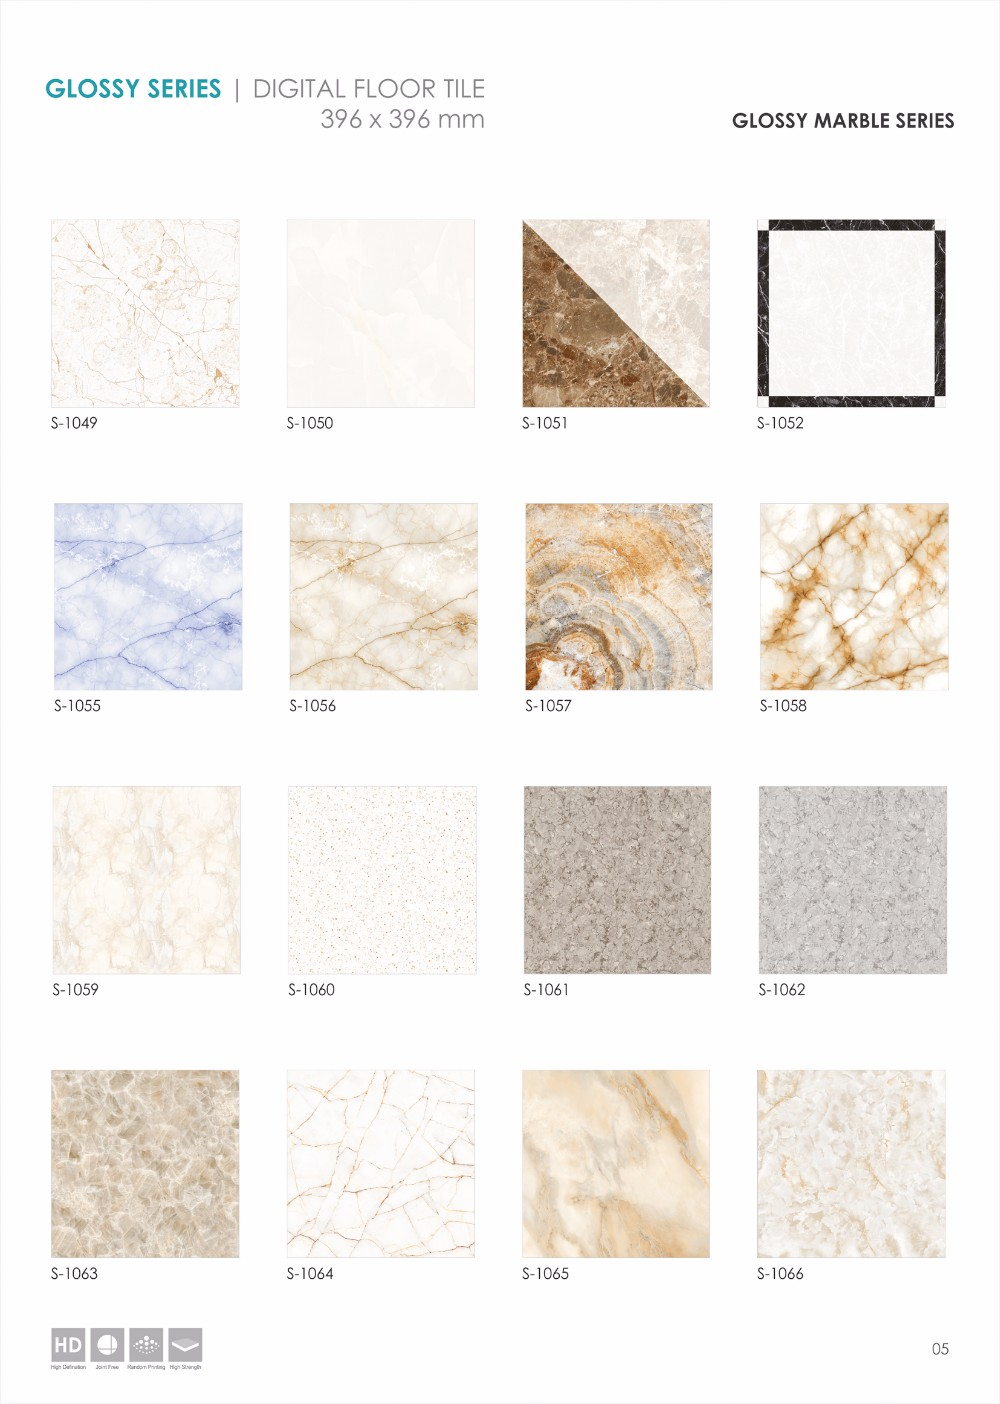 Ceramic floor tile 40x40floor tiles factory in india buy bathroom ceramic floor tile 40x40 floor tiles factory in india dailygadgetfo Choice Image